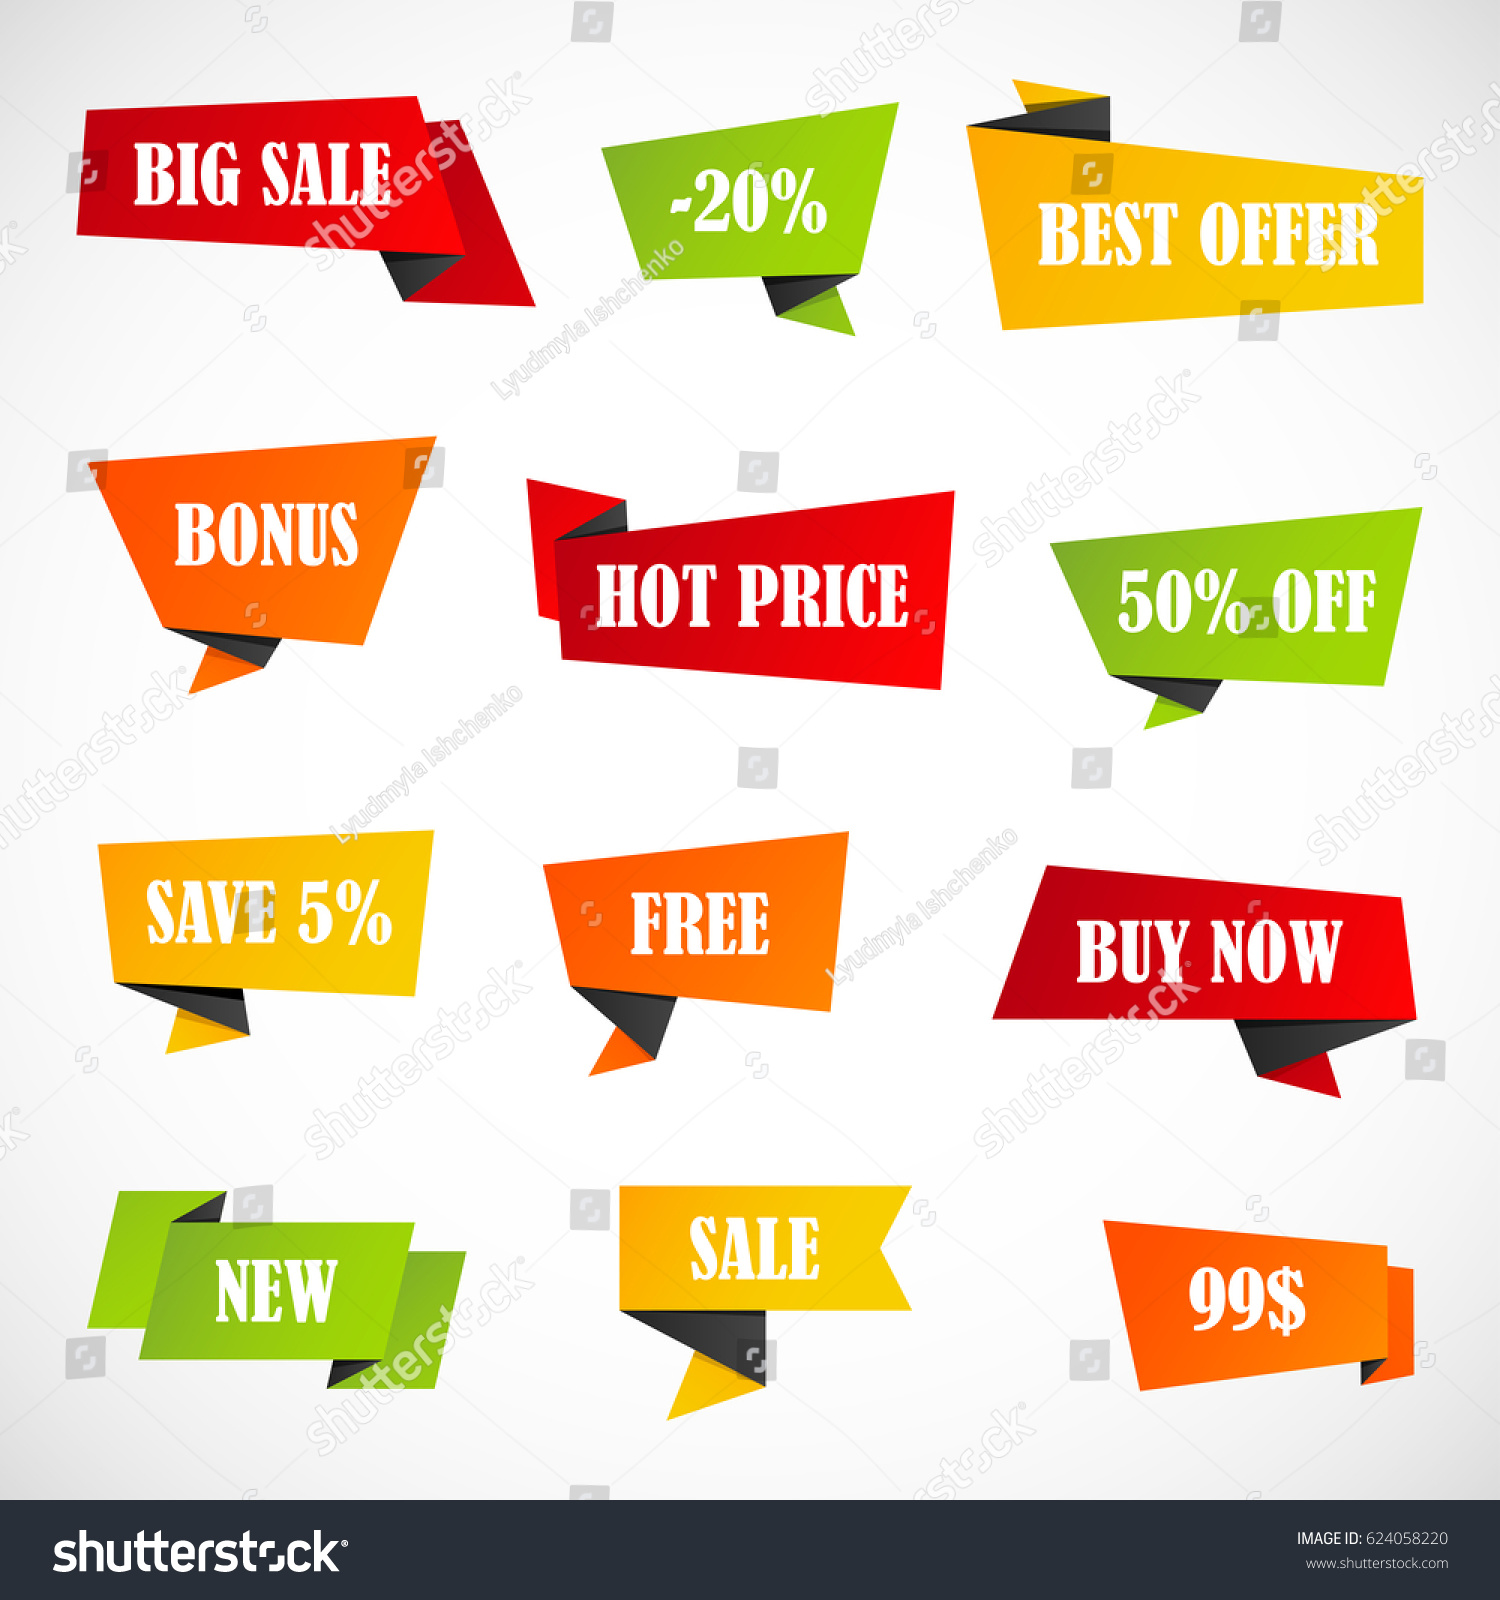 Price tag template free printable blank price tag template free - Free Price Tag Template Vector Stickers Price Tag Banner Label Stock Vector 624058220